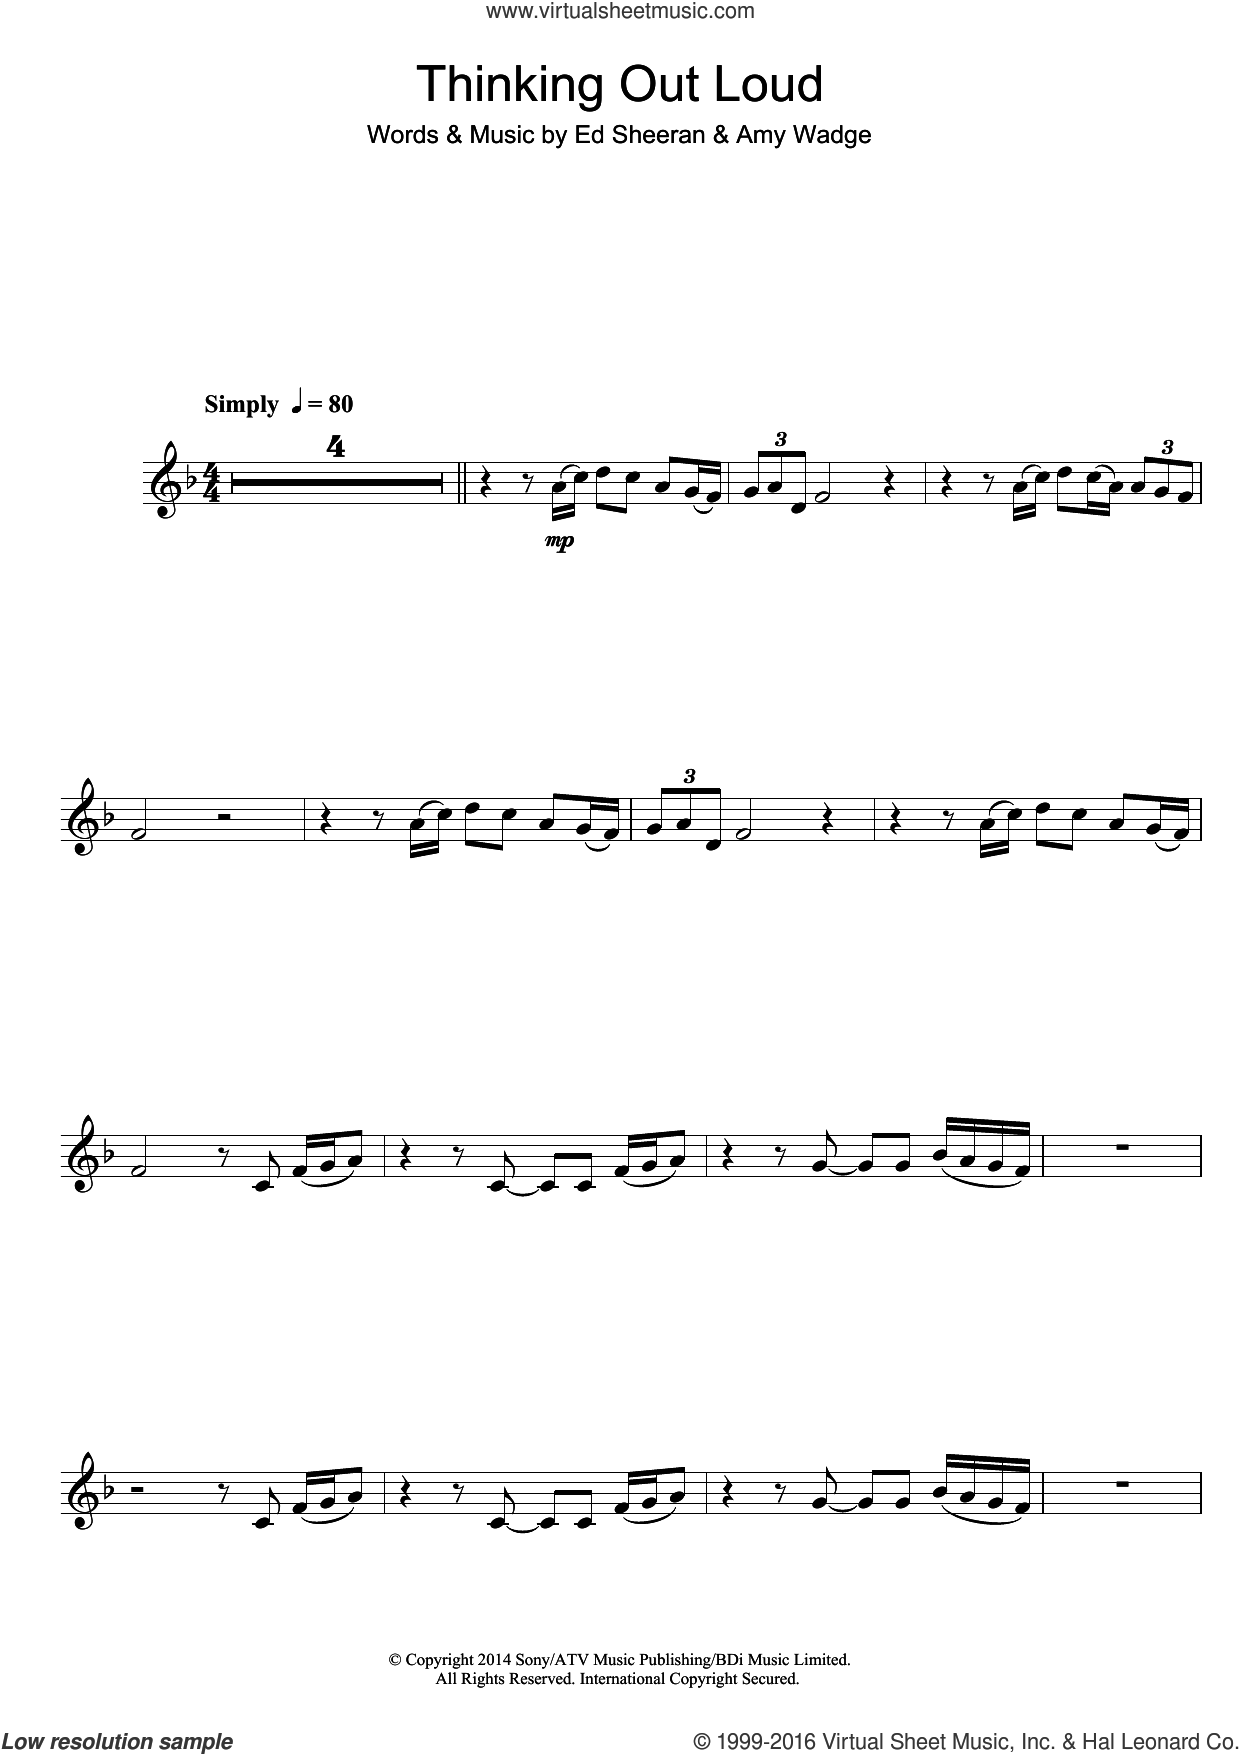 Thinking Out Loud sheet music for clarinet solo by Ed Sheeran and Amy Wadge, intermediate skill level